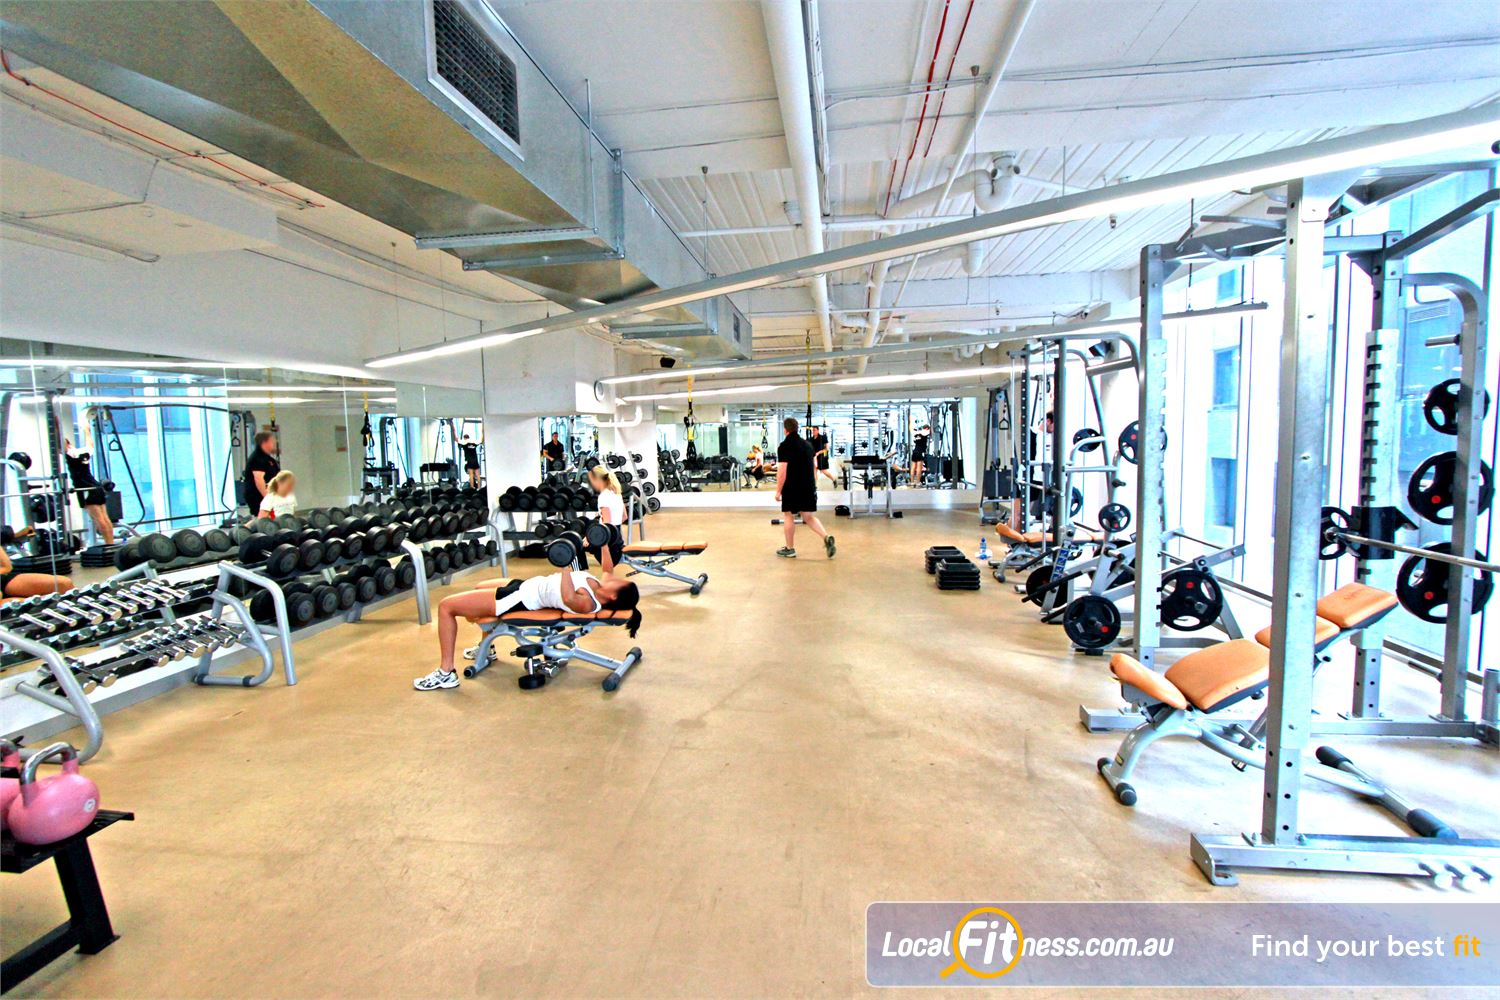 South Pacific Health Clubs Melbourne The fully equipped Melbourne gym free-weights area.